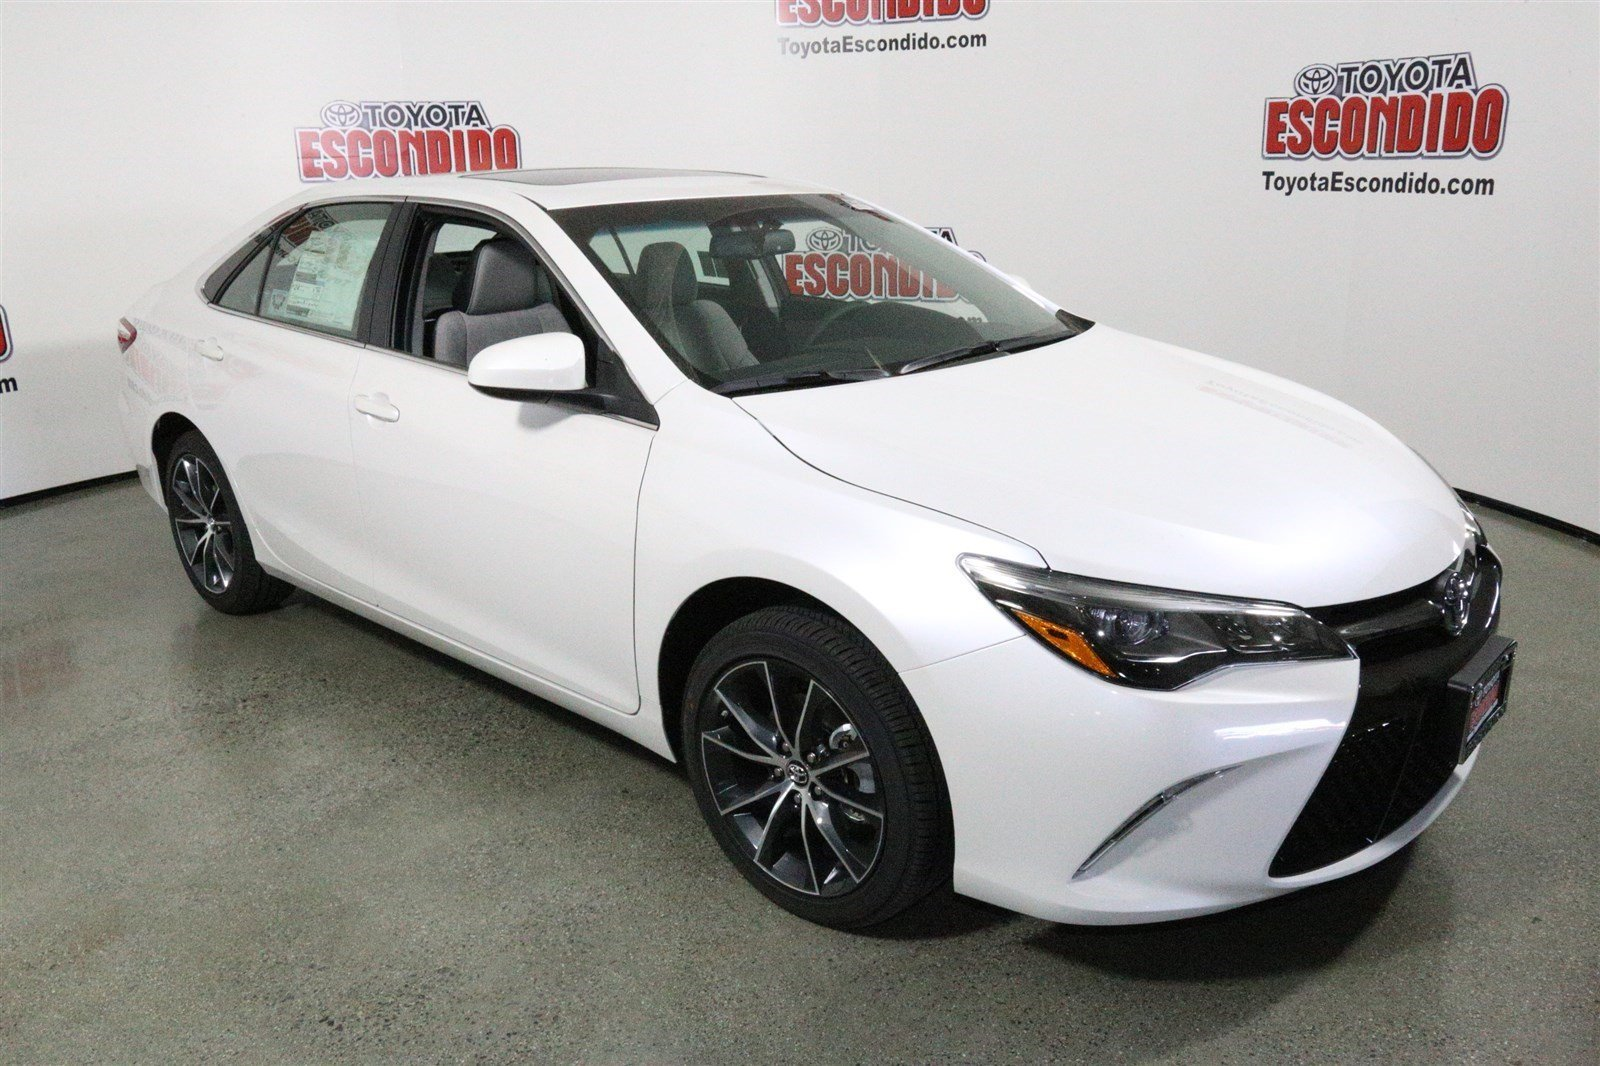 new 2017 toyota camry xse v6 4dr car in escondido 1014089 toyota of escondido. Black Bedroom Furniture Sets. Home Design Ideas